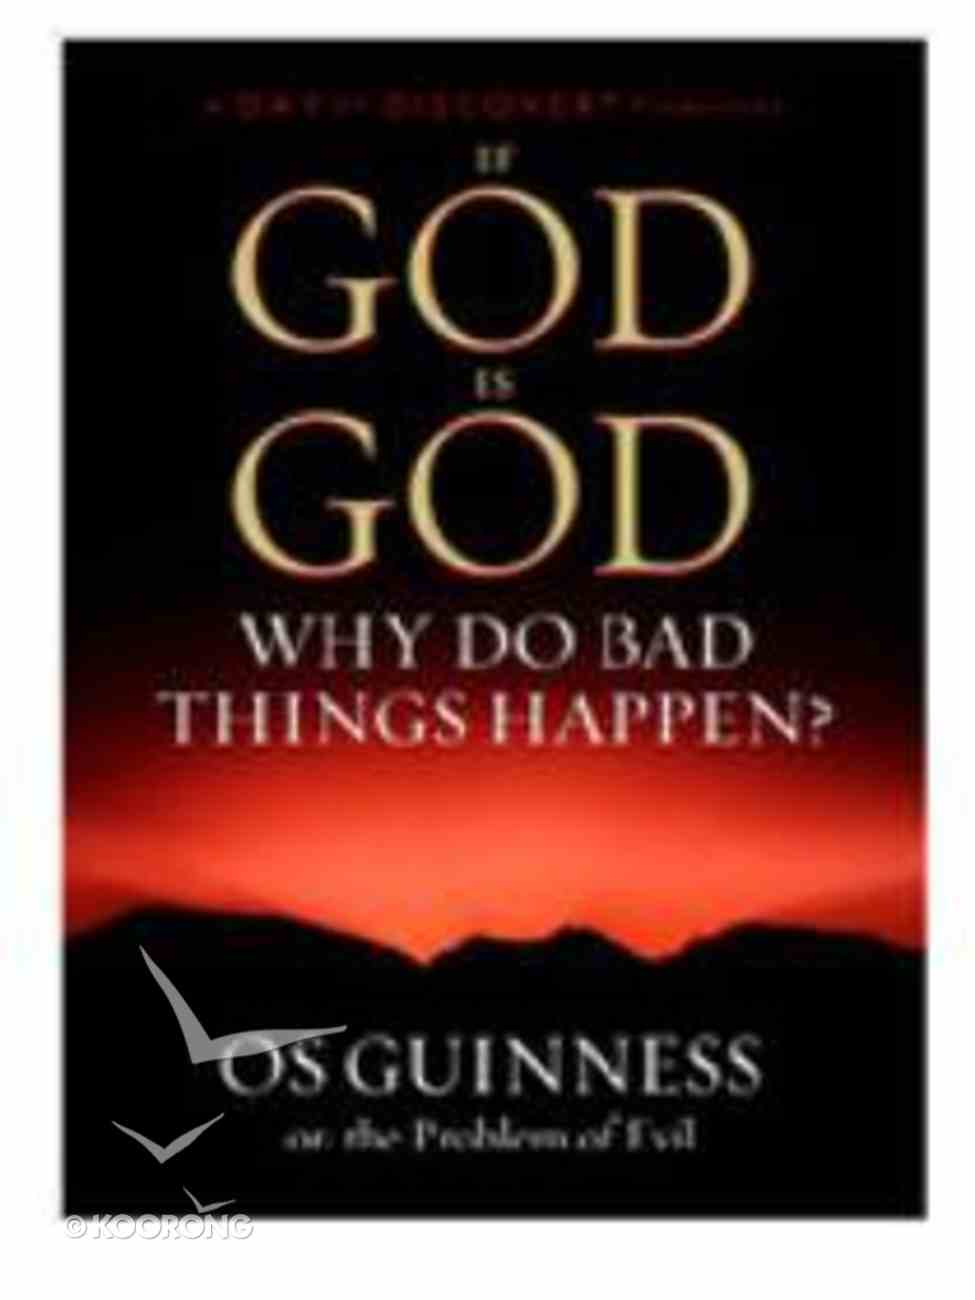 If God is God, Why Do Bad Things Happen? DVD